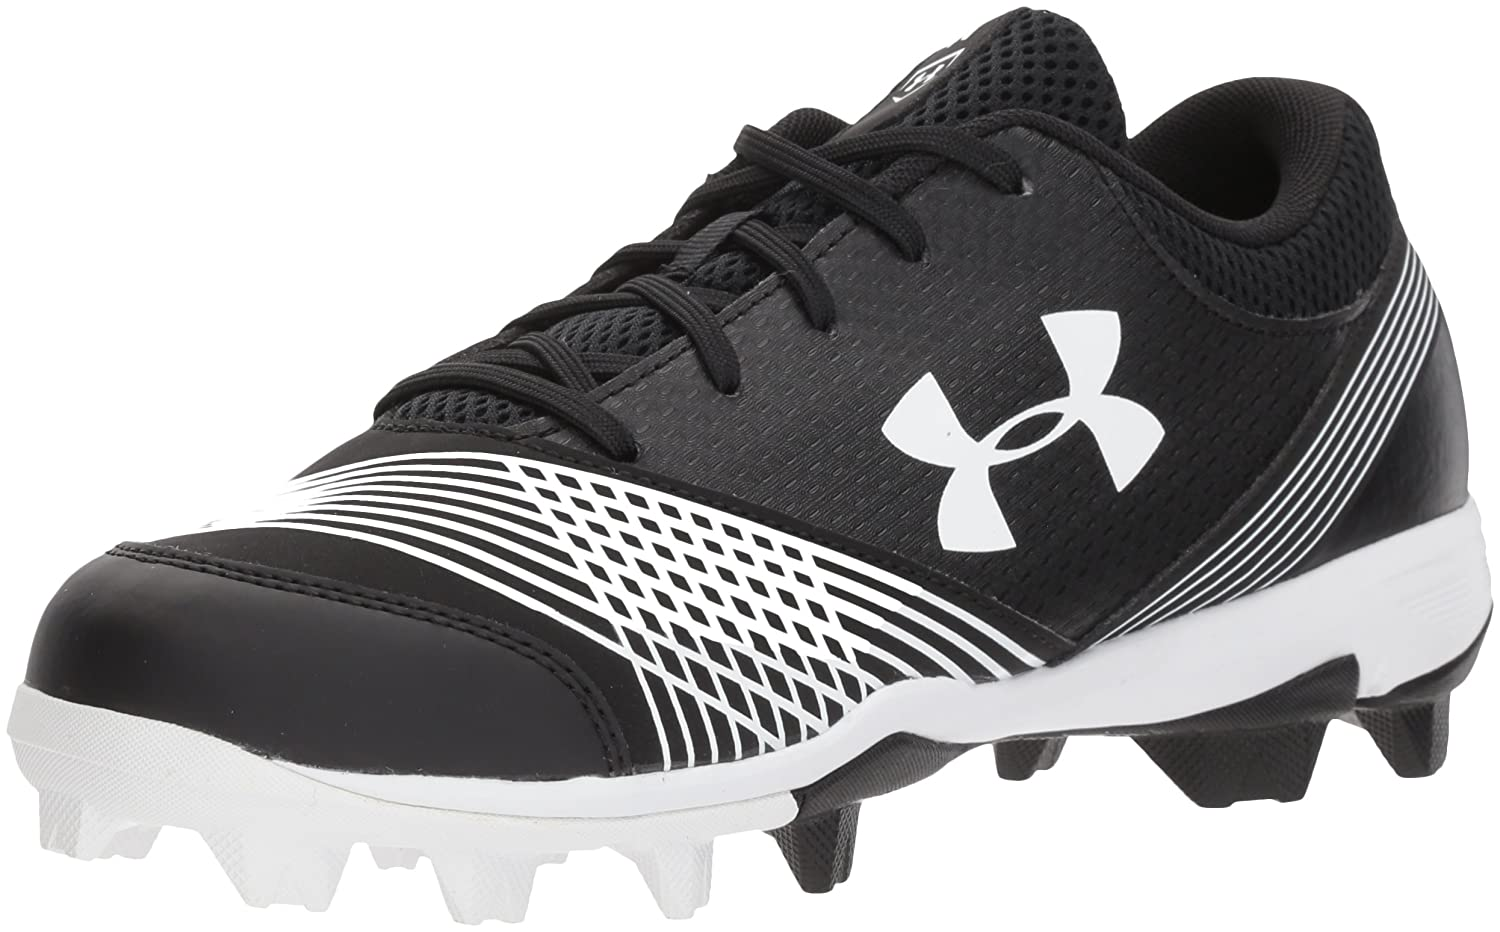 Under Armour Women's Glyde RM Baseball Shoe B06XCMWNJD 11 M US|Black (011)/Black